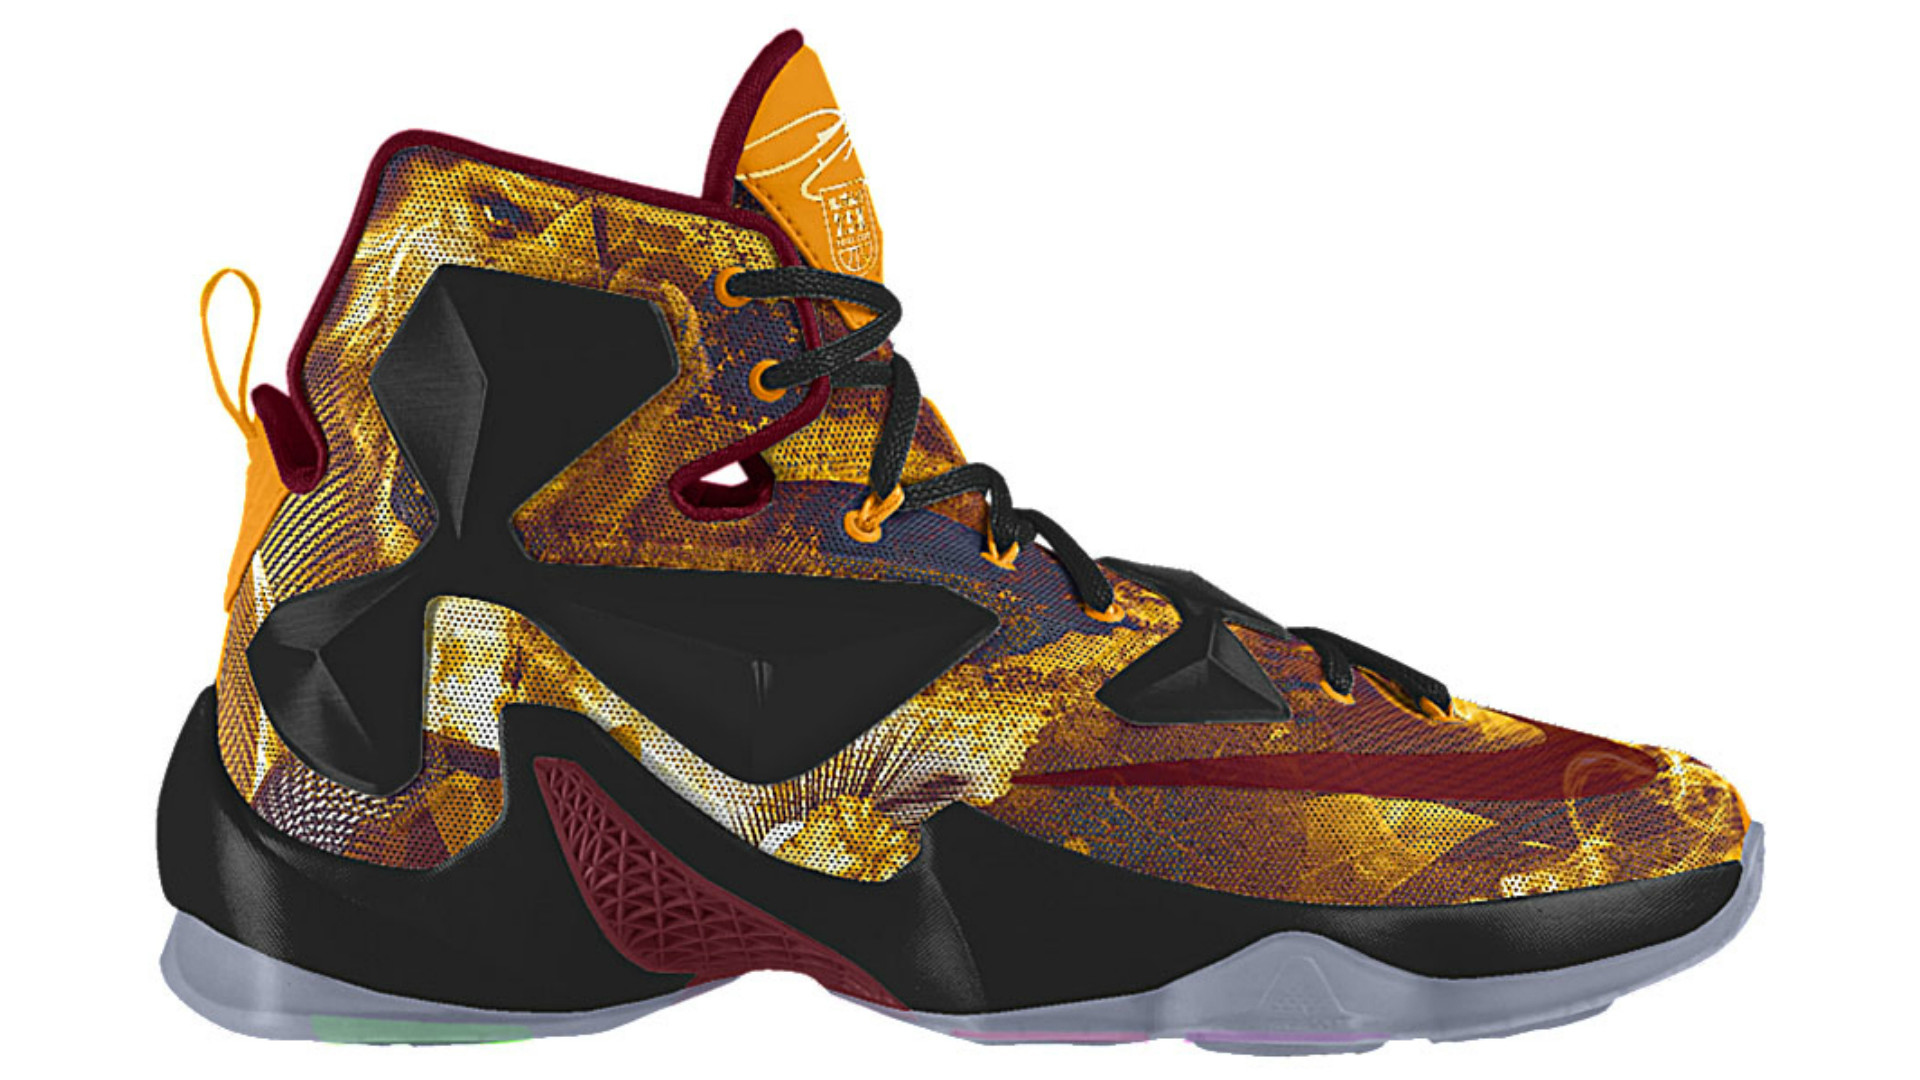 Lebron James Shoes Wallpapers ·①